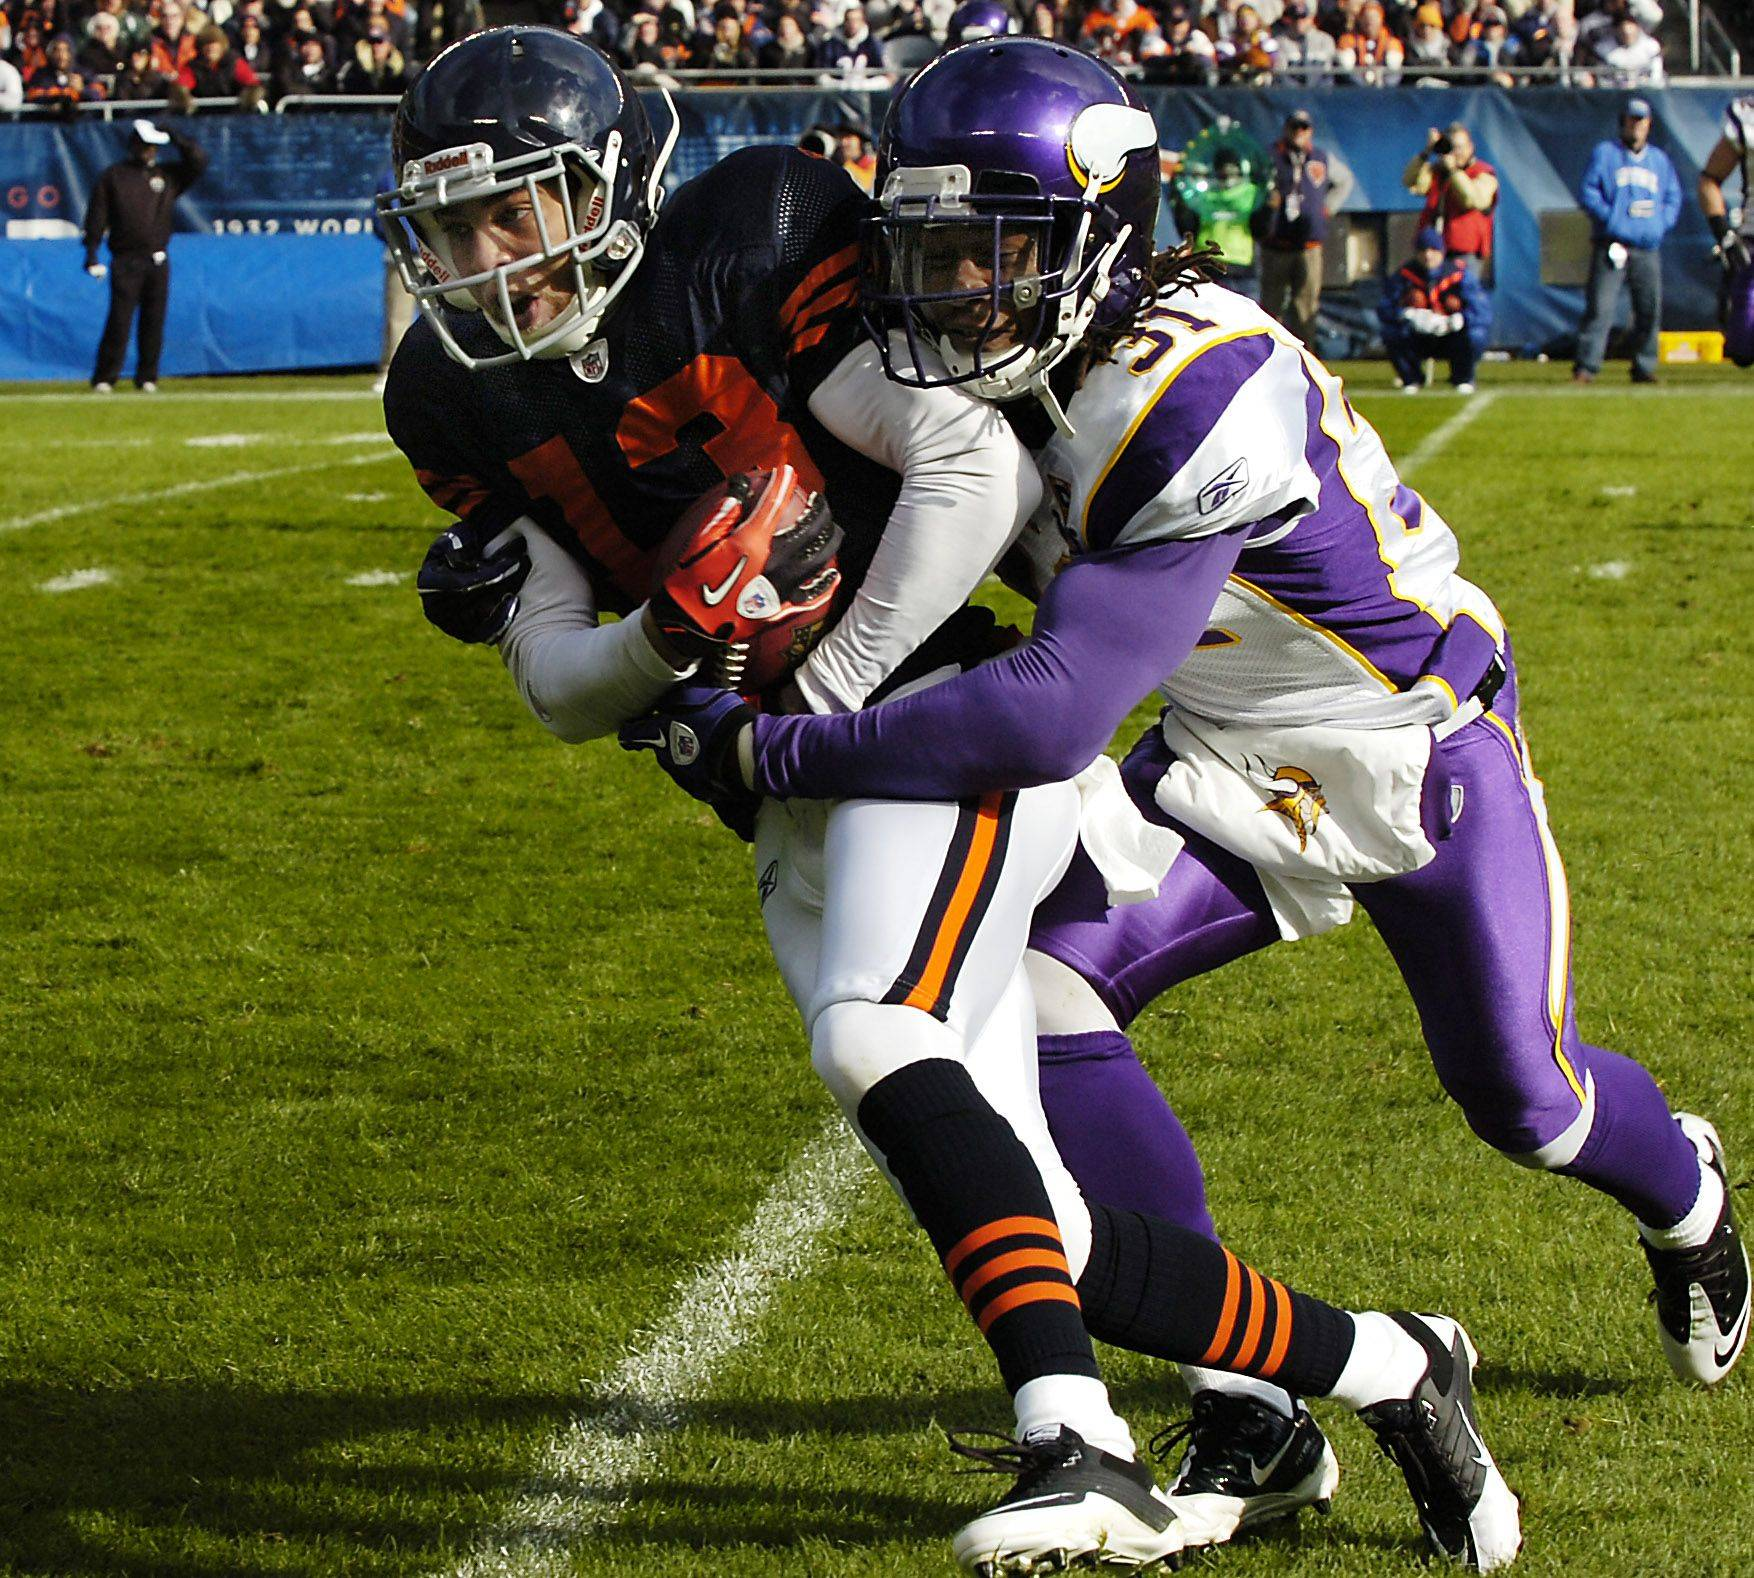 Chicago Bears Johnny Knox gets wrapped up by Minnesota's Chris Cook on a pass play in the second quarter.